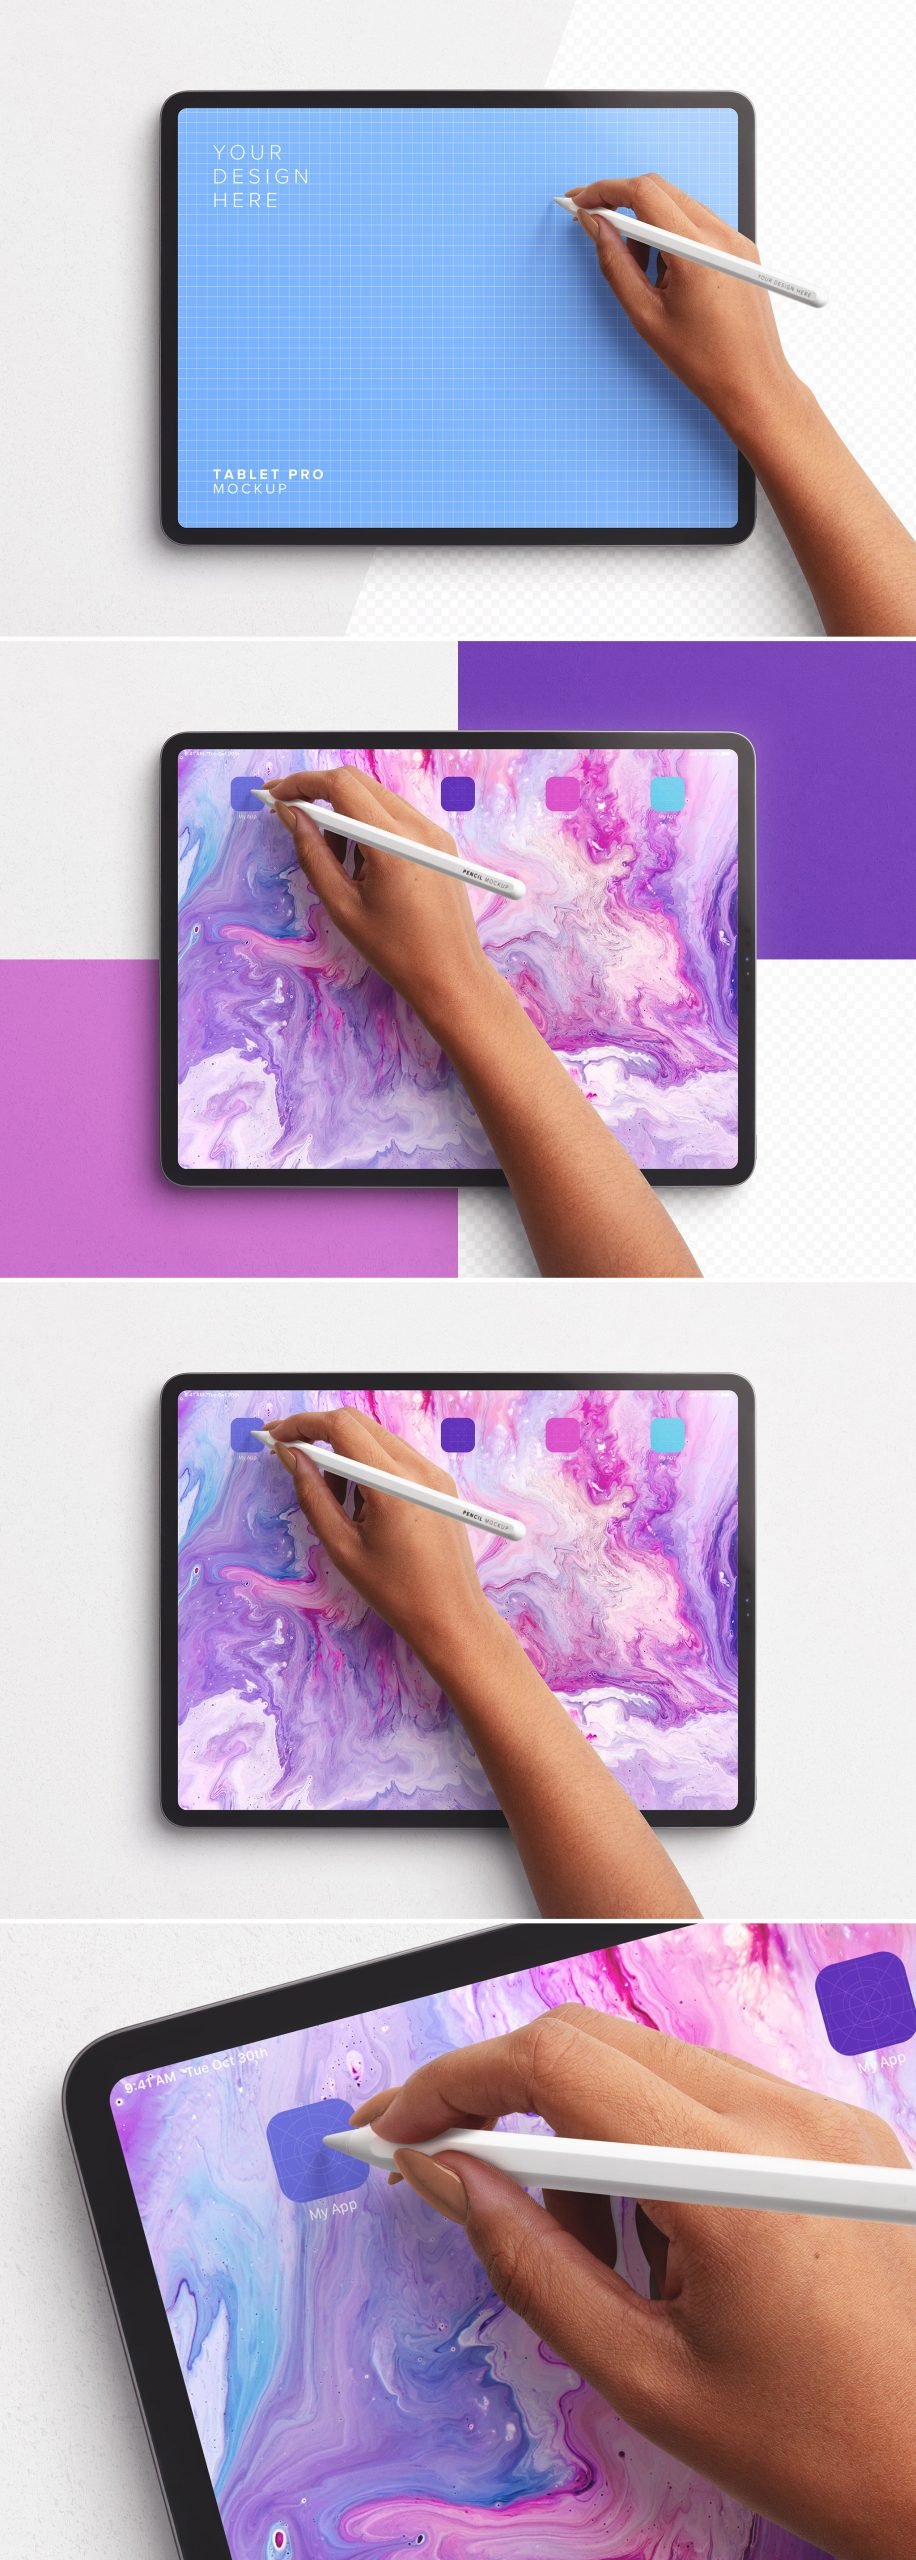 Tablet Pro Mockup with Hand Holding Pencil Preview scaled